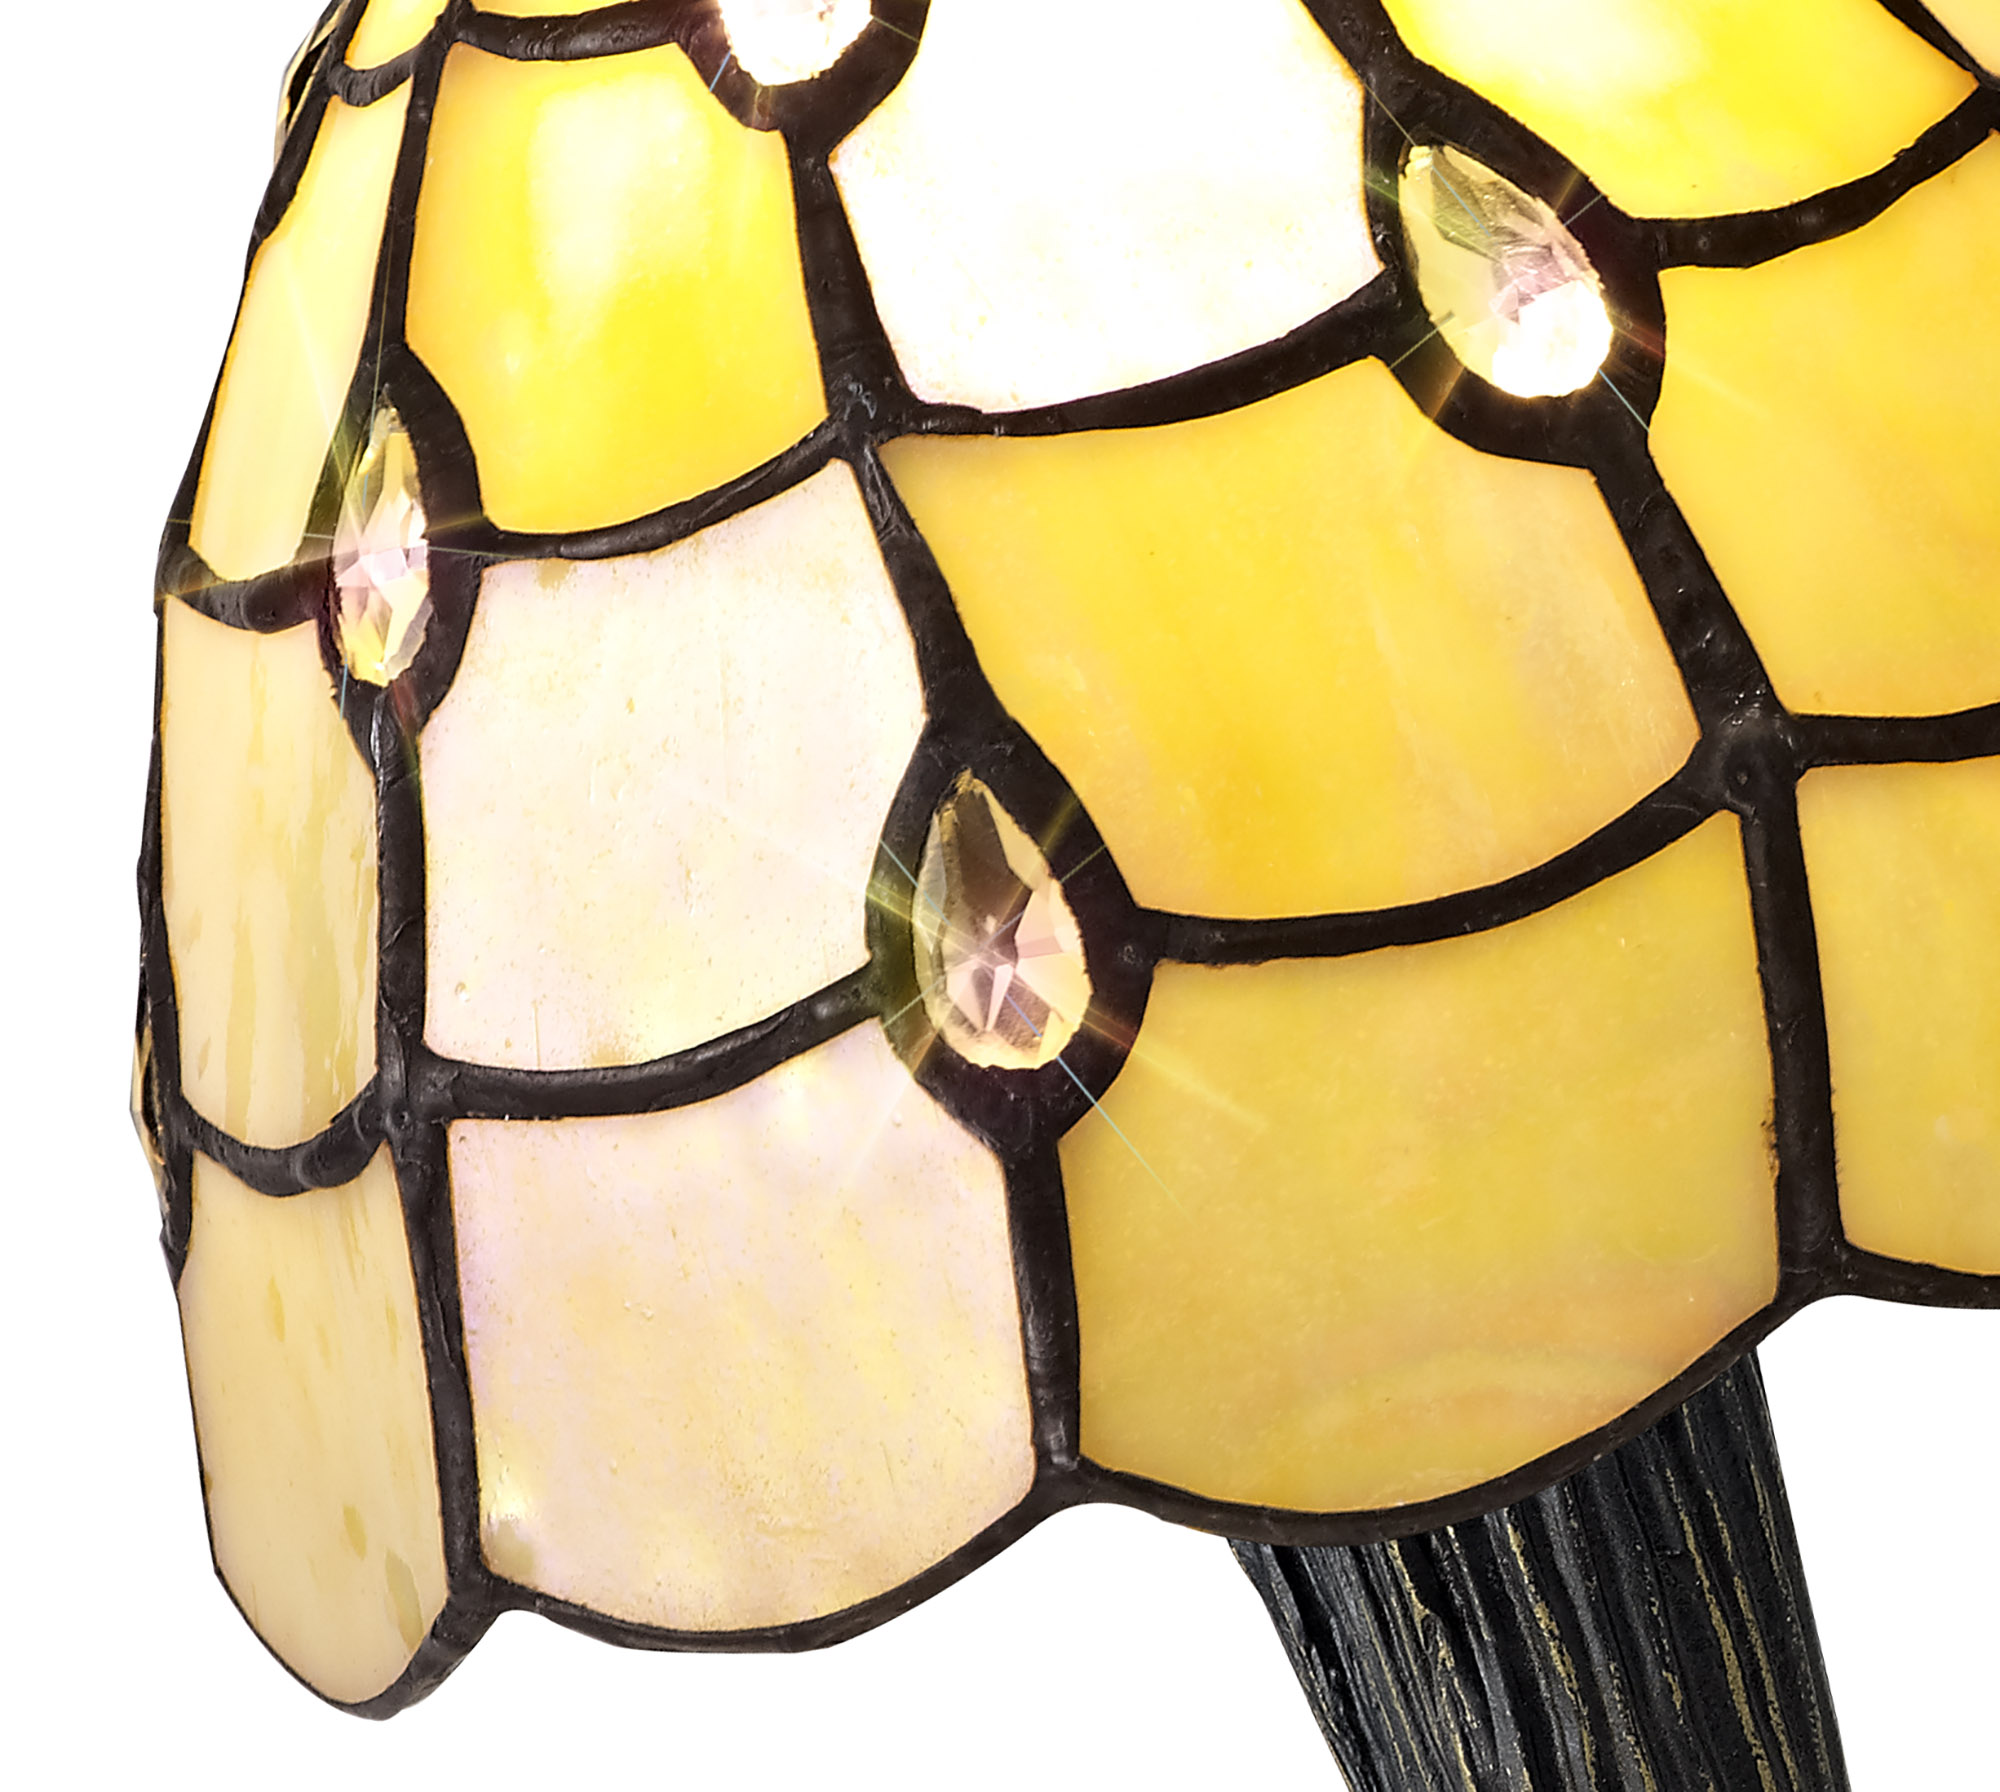 Tiffany Table Lamp, 1 x E14, Black/Gold, Beige/Clear Crystal Shade